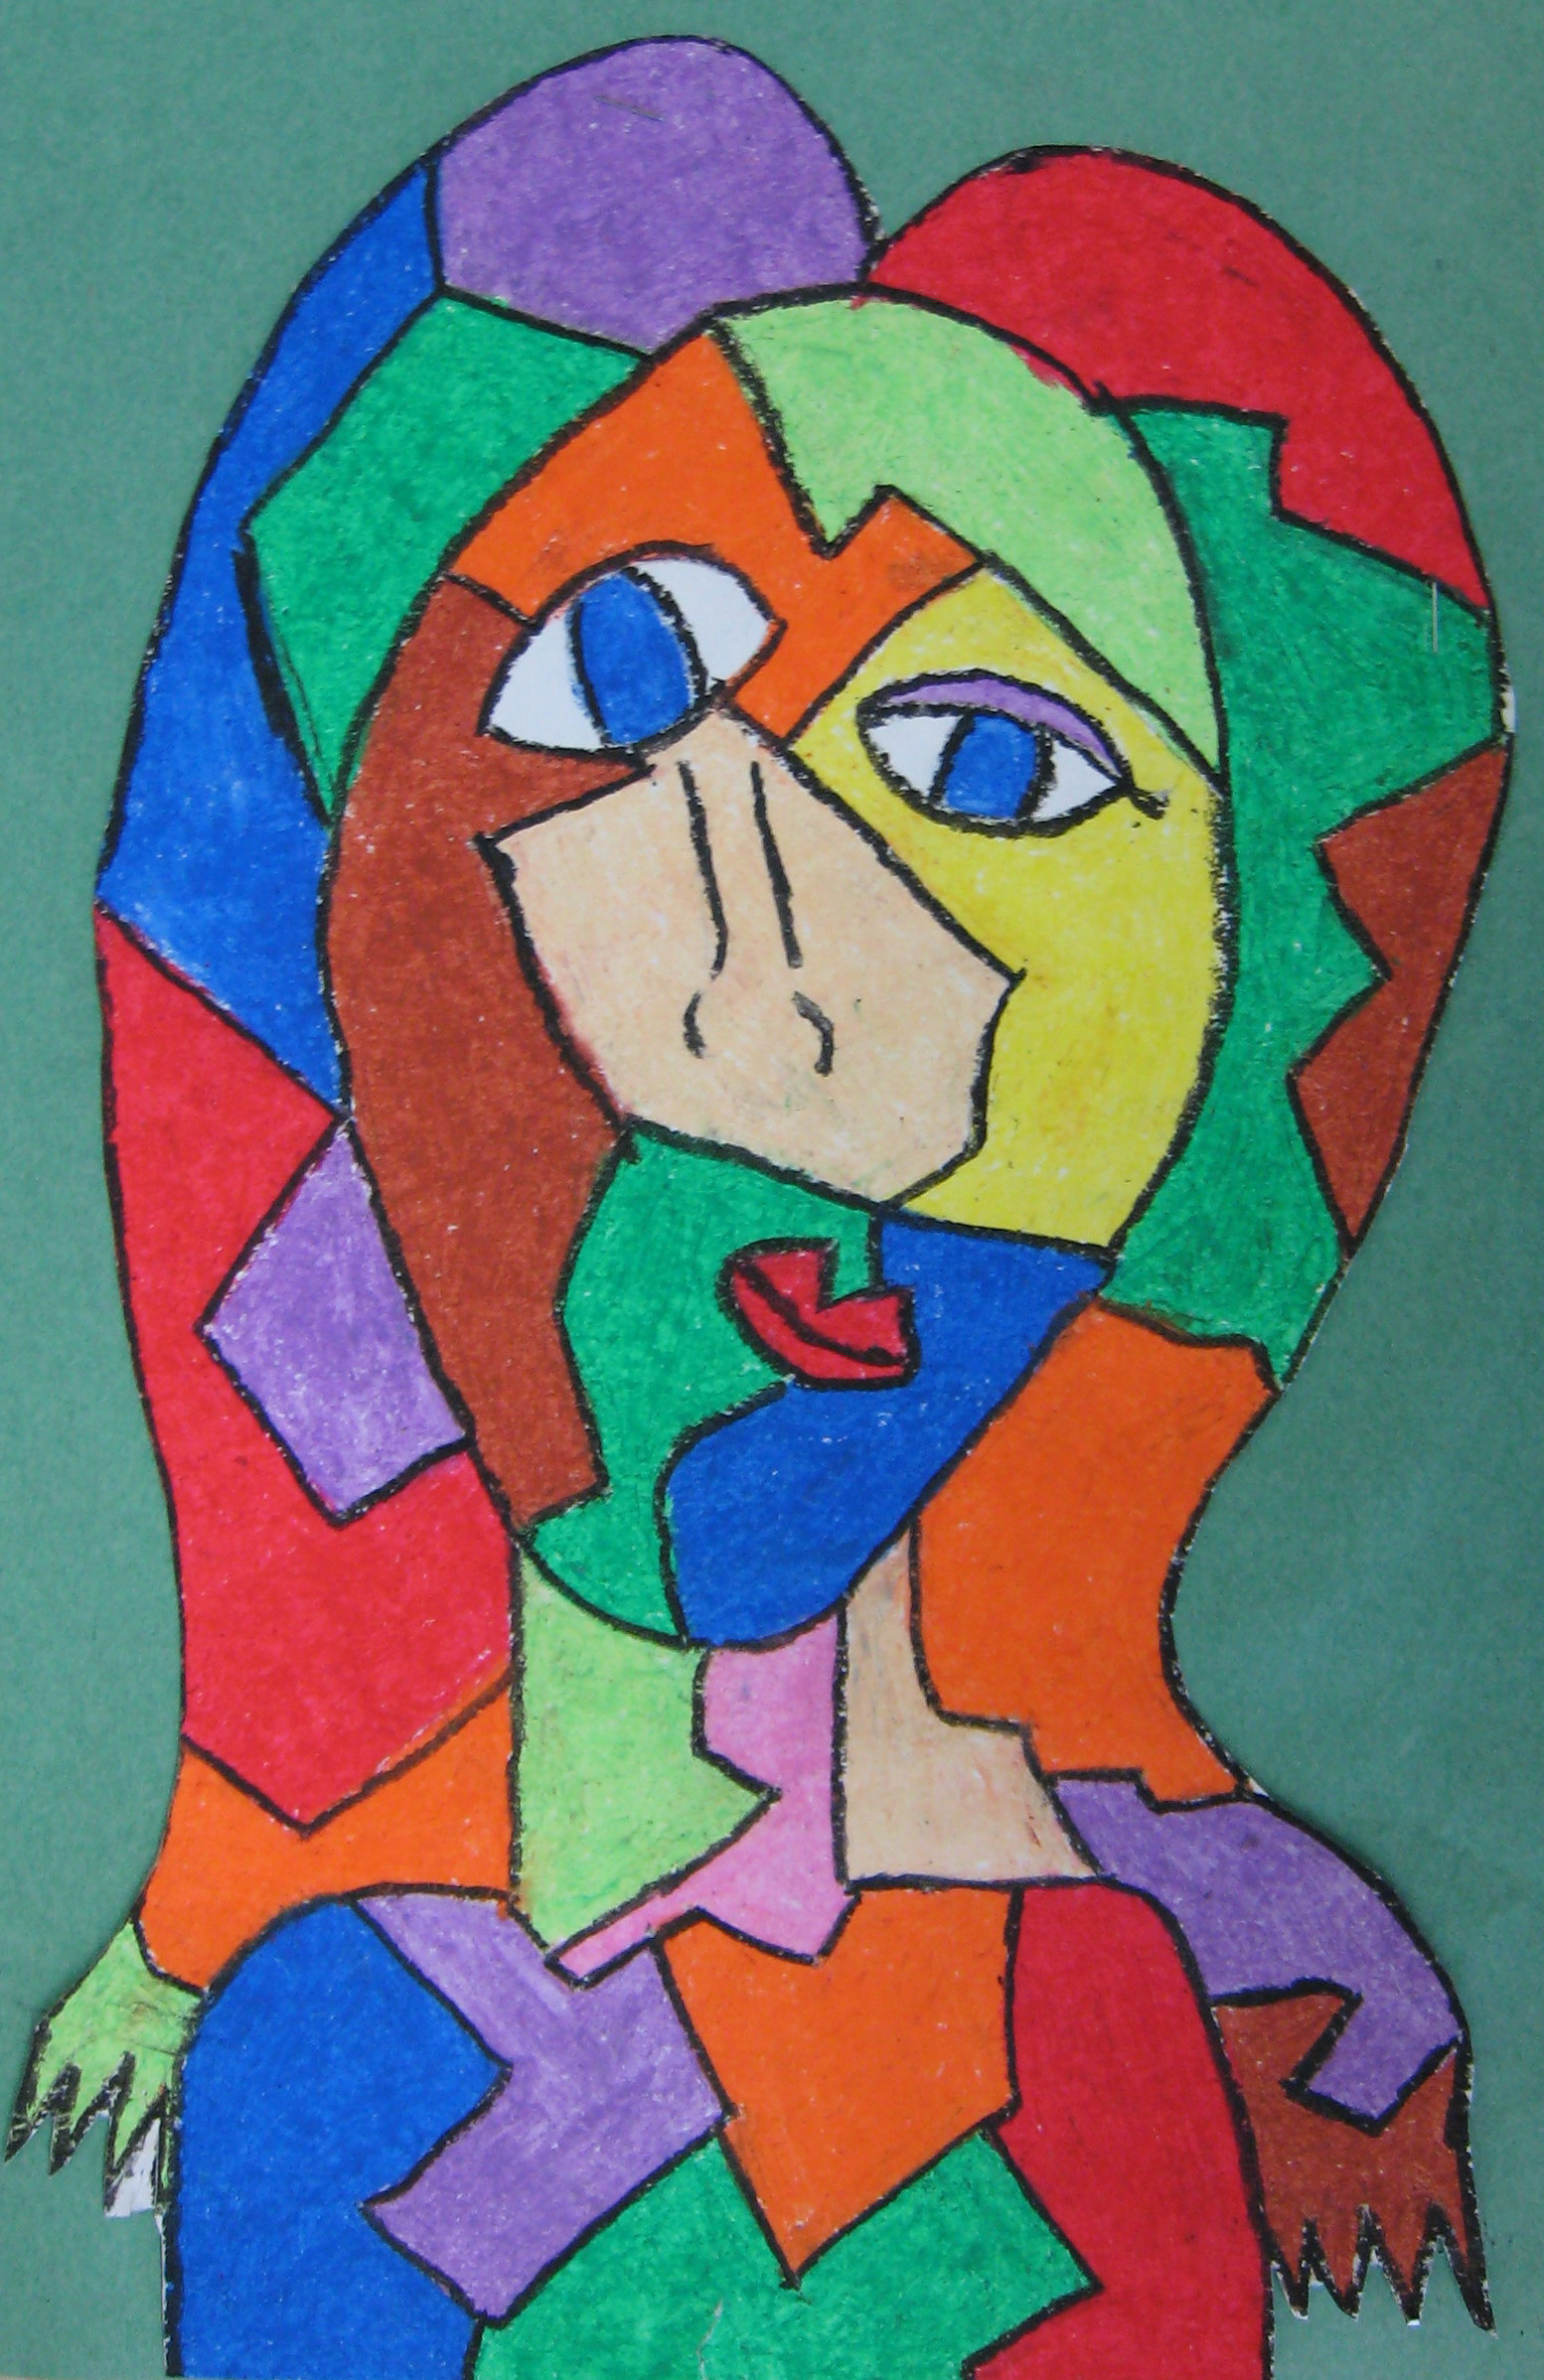 Picasso Cubist Faces Morgan-i-picasso.jpg